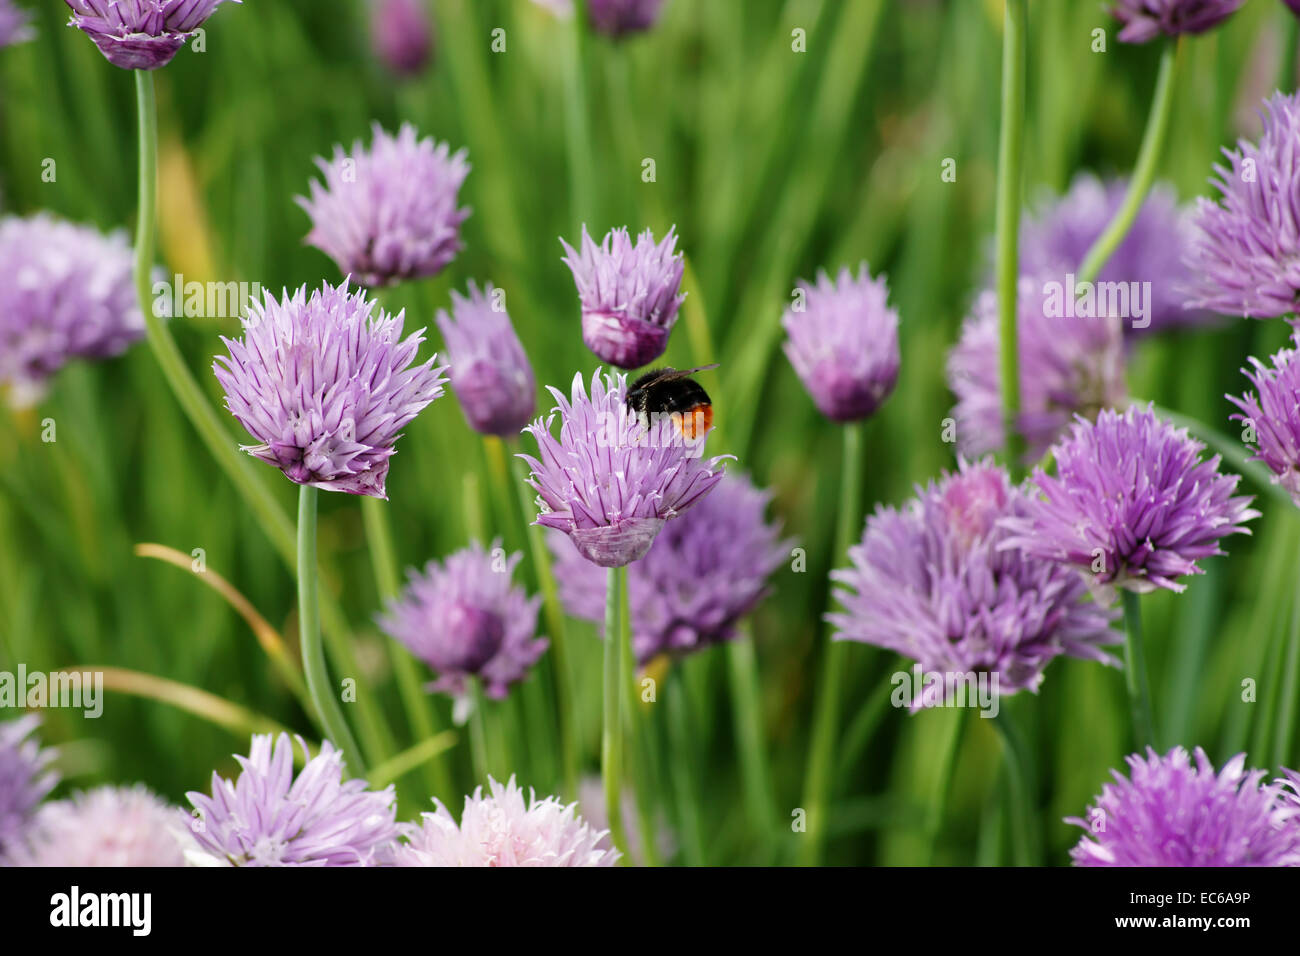 Hummel and chives - Stock Image